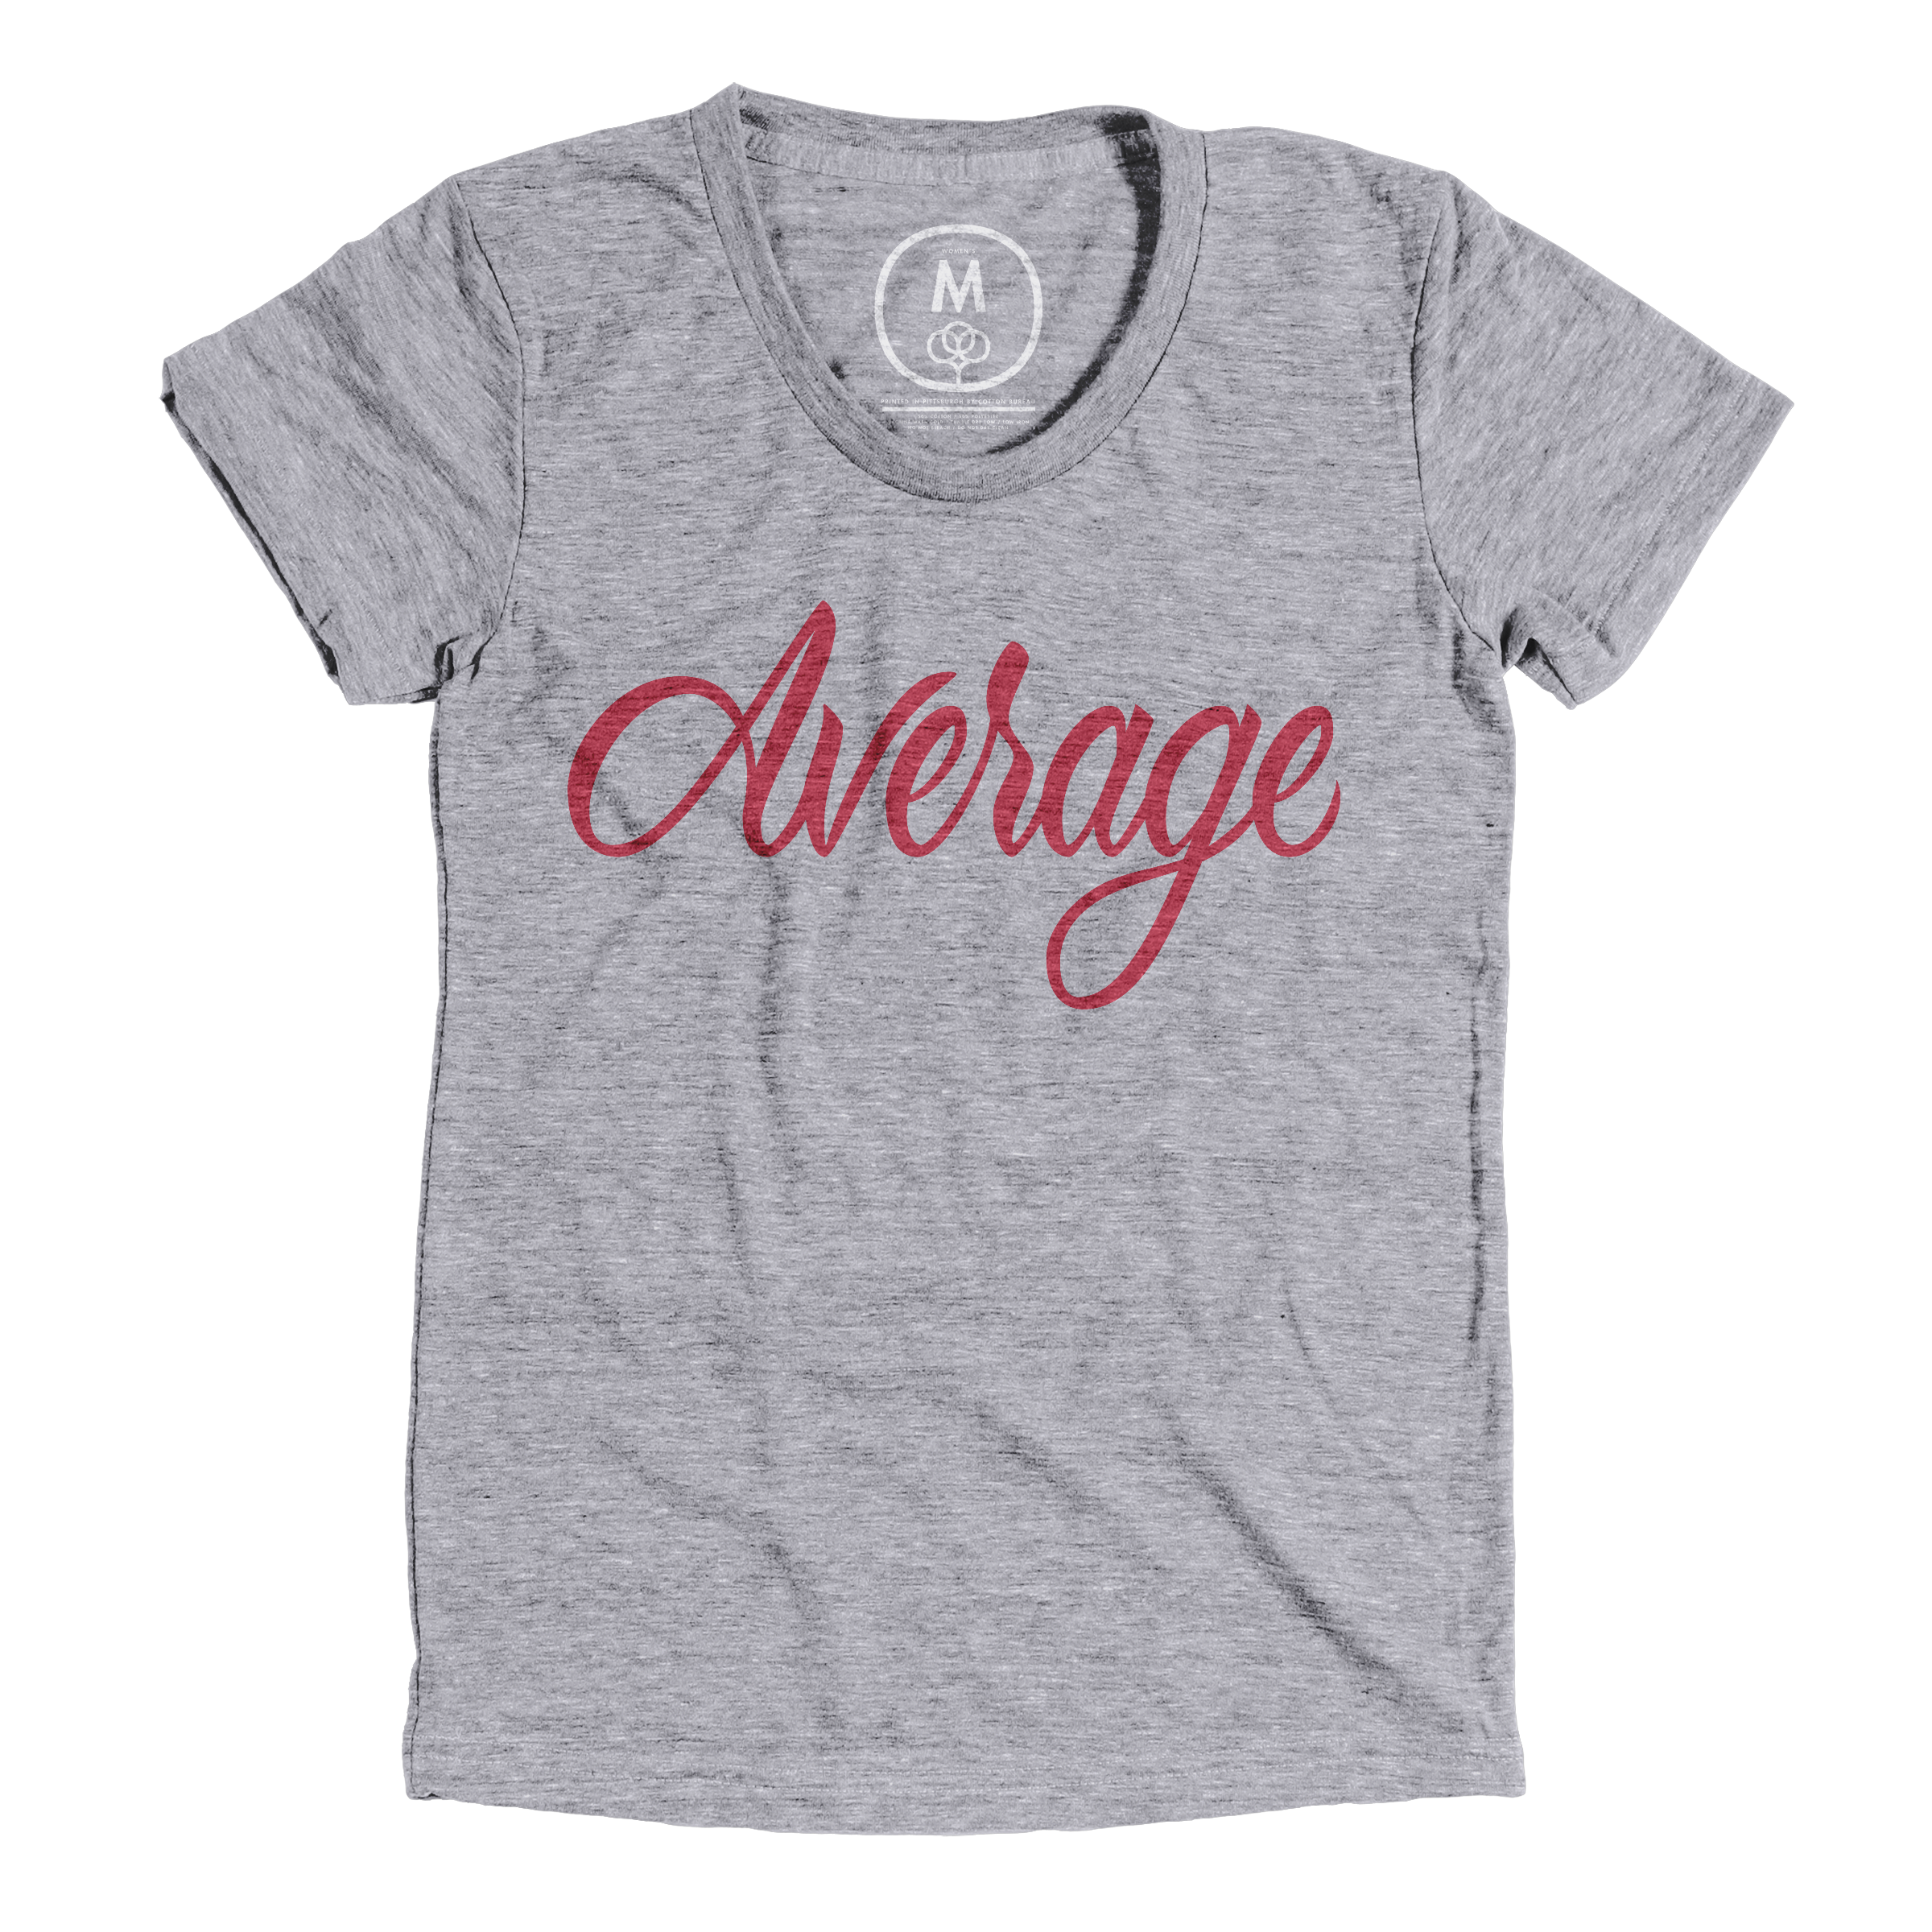 Your Average Tee Premium Heather (Women's)